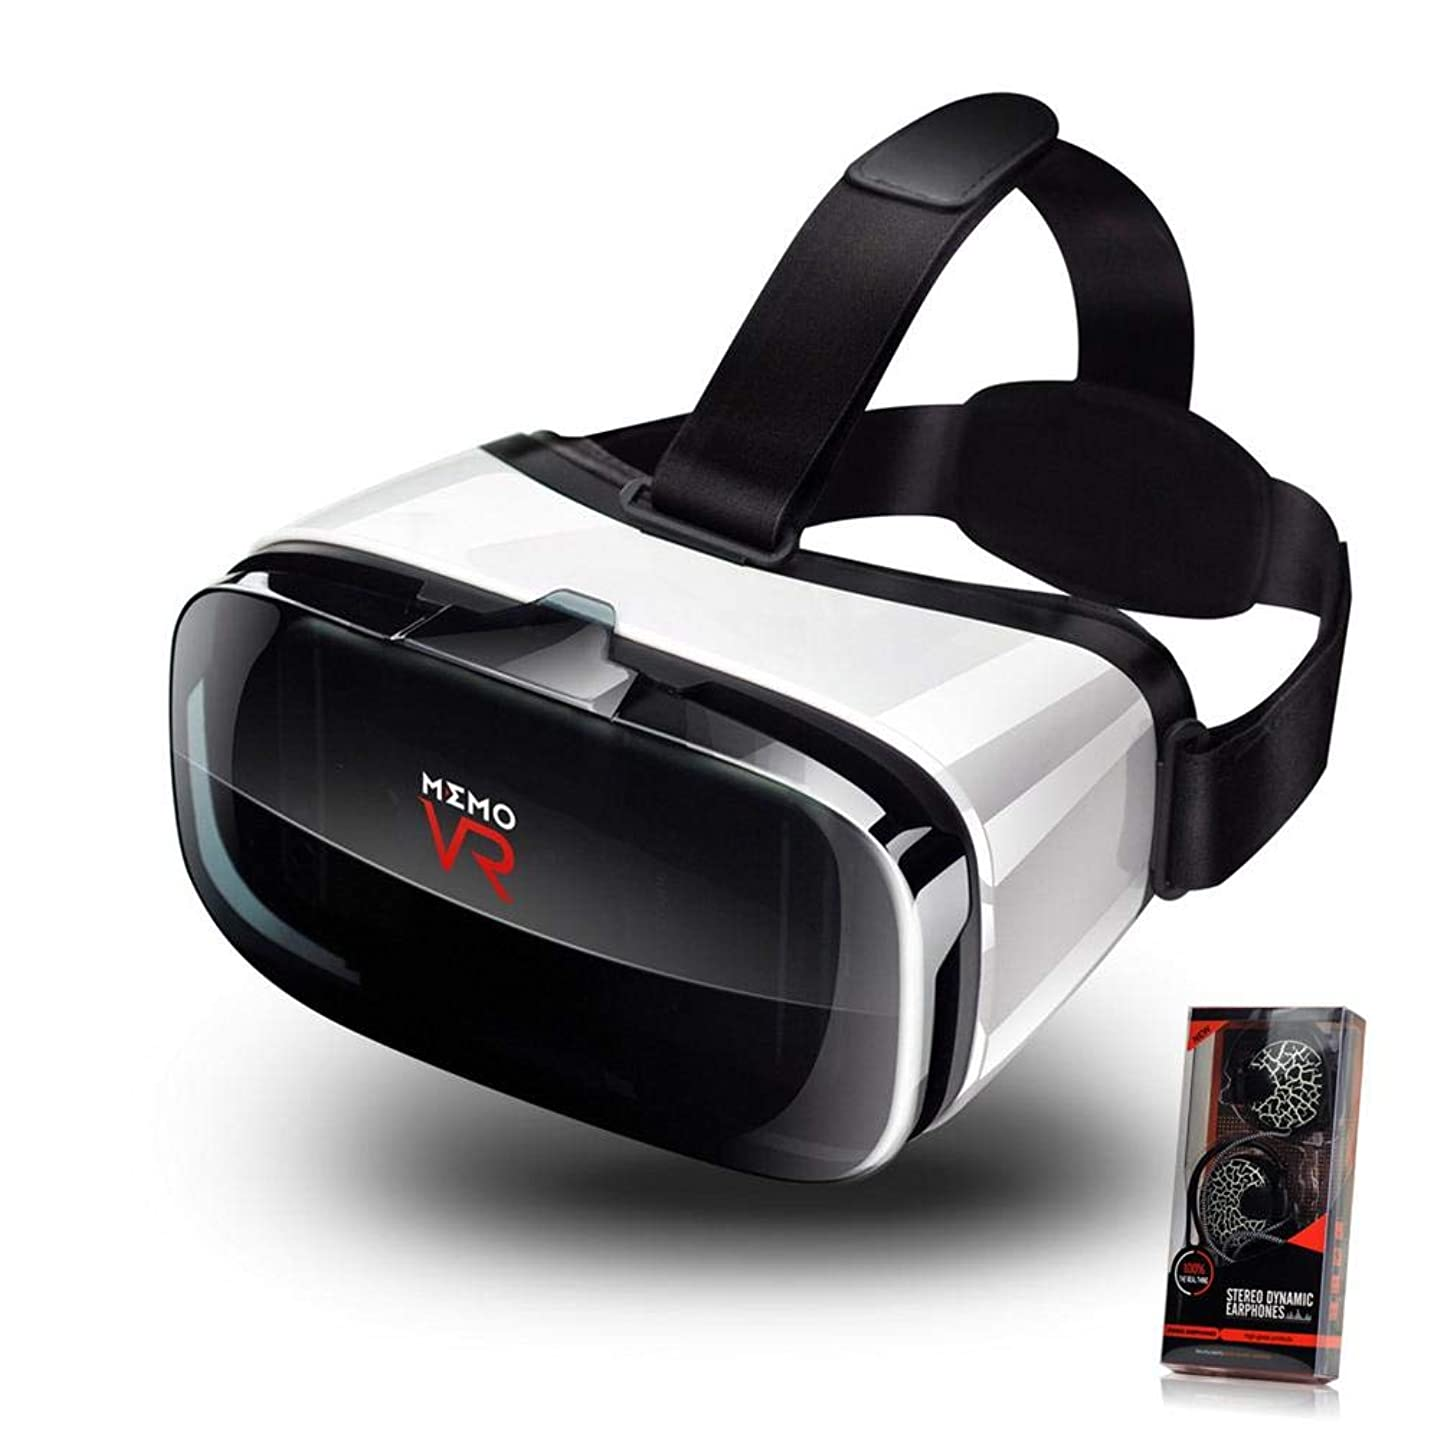 V6 VR Goggles 3D Virtual Glasses, VR Headset with Controller Remote, Eye-Safe Adjustable HD Quality Lenses,Eye Protected HD Virtual Reality Headset W/Touch Button, Smartphones W/ 4.5-6.3in Screen.